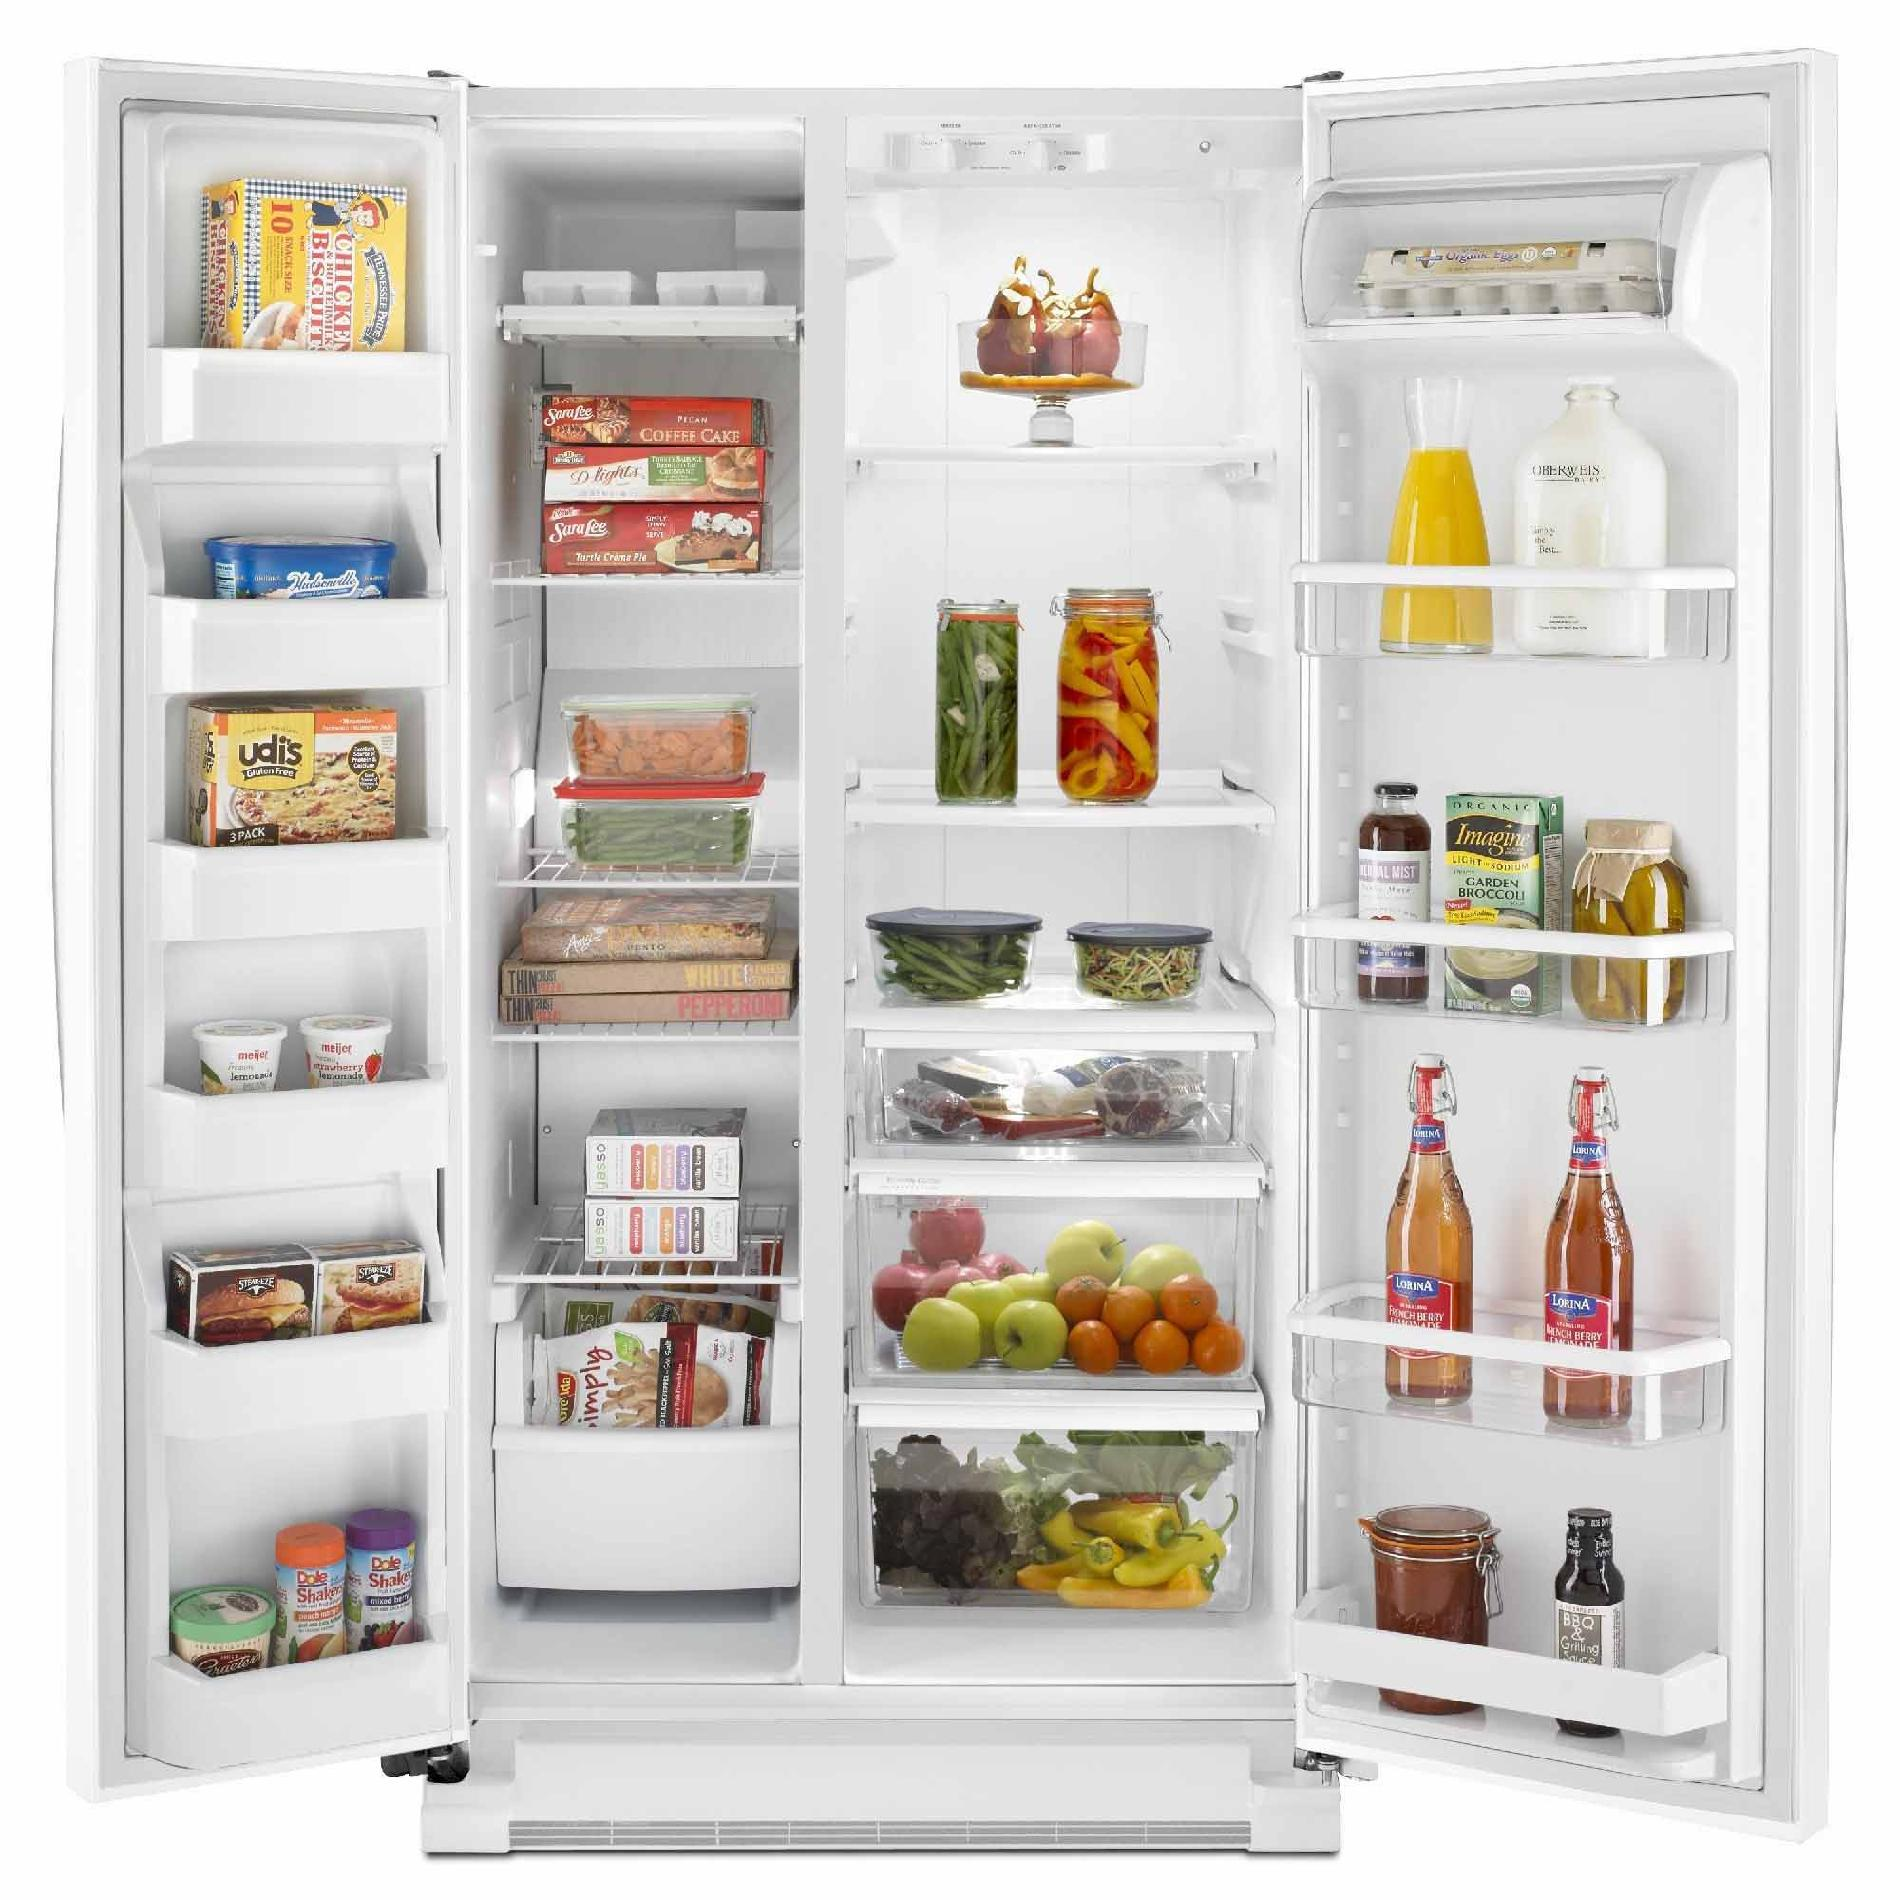 Whirlpool WRS325FNAH 24.9 cu. ft. Side-by-Side Refrigerator w/ Accu-Chill™ Temperature Management - White